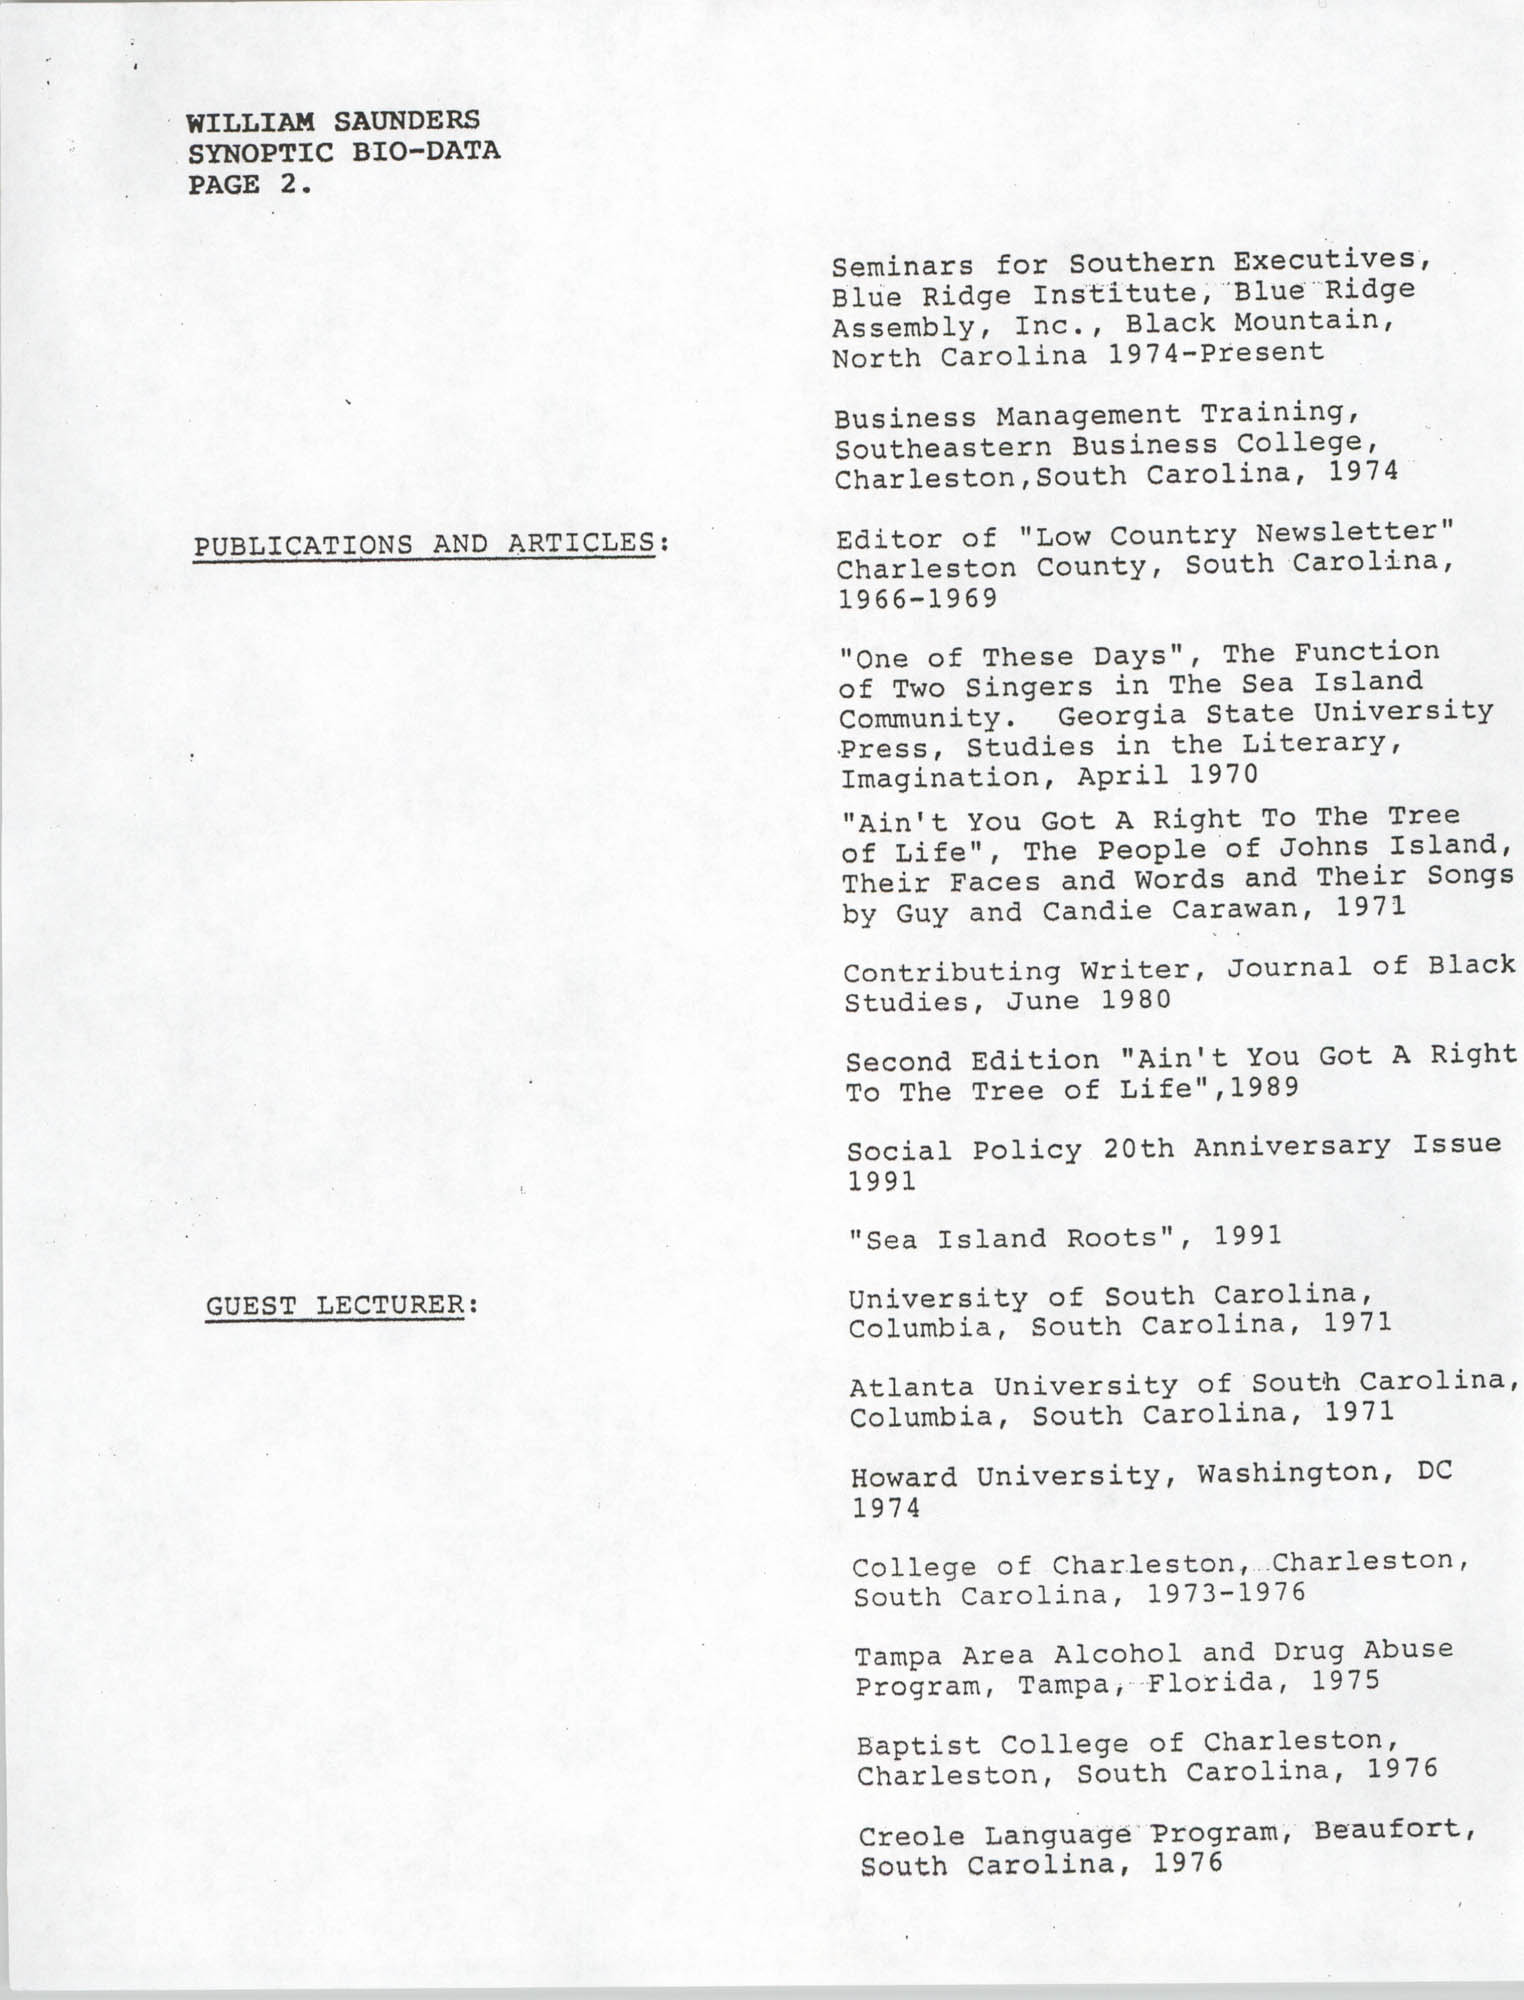 Synopitic Bio-Data on William Saunders, Page 2